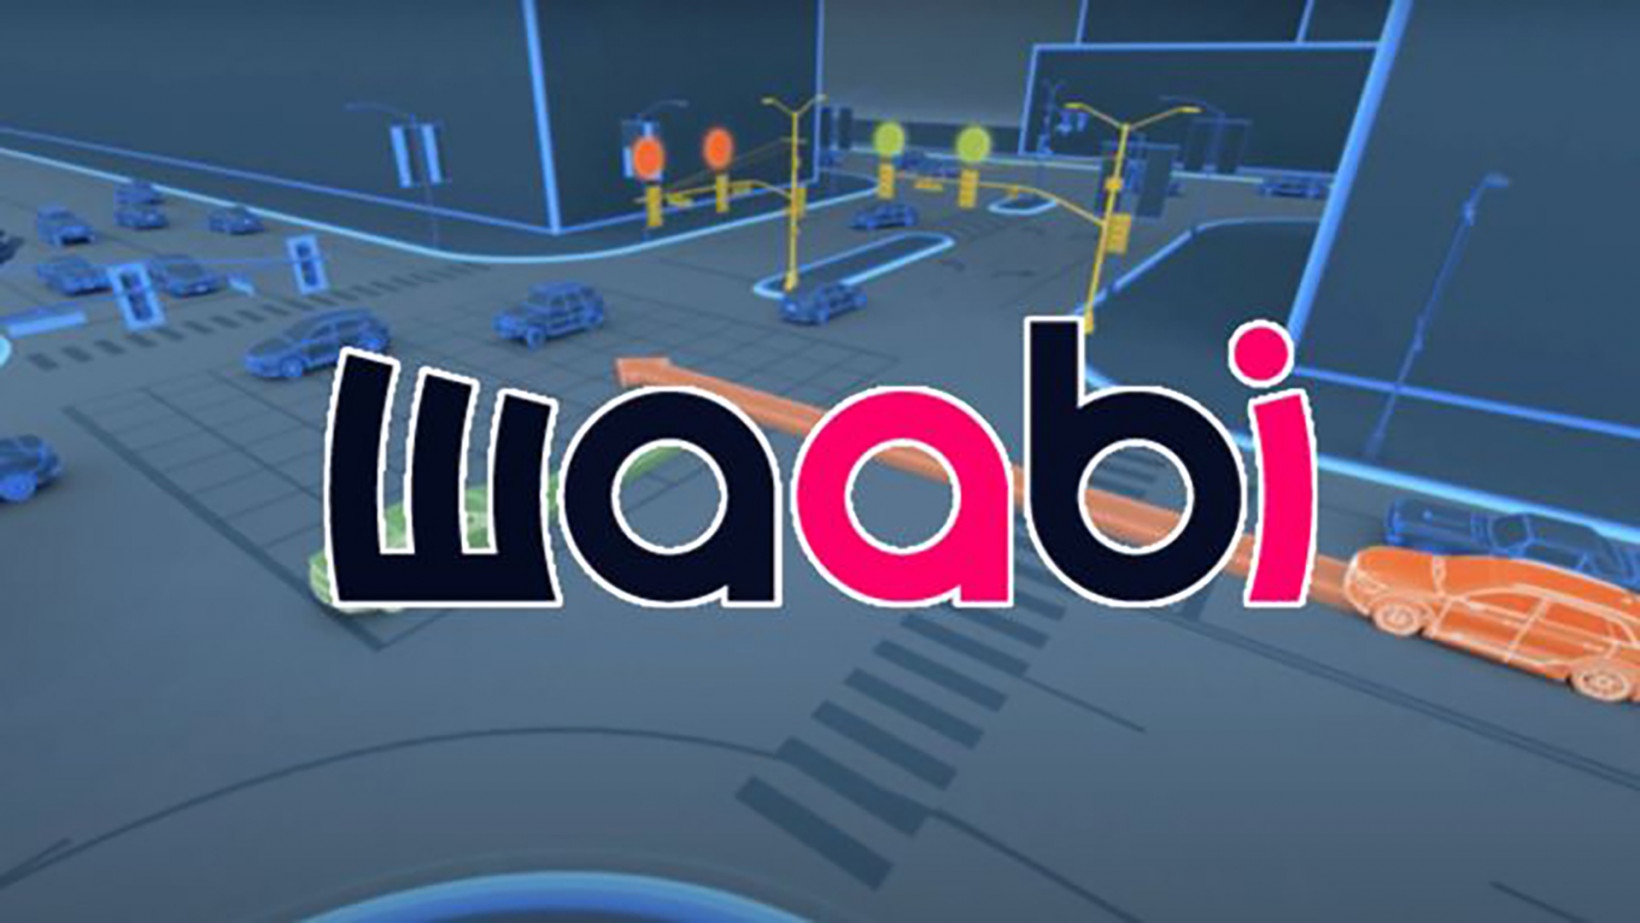 Self-driving startup Waabi just managed to net $83.5M — how?